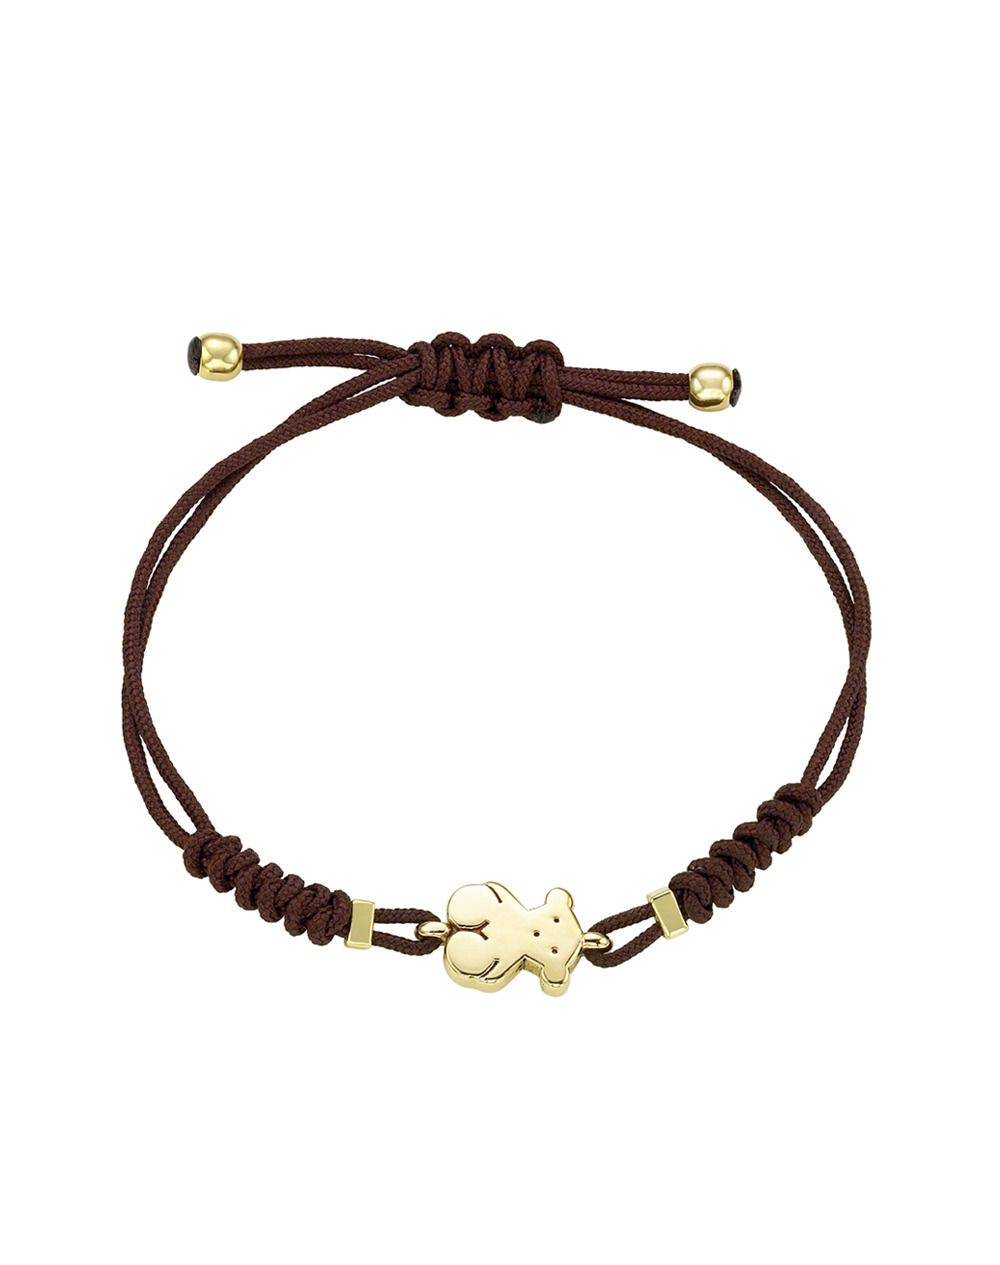 2b2430984770 Tous Bear Gold Bracelet - Women - Jewellery - El Corte Ingles ...